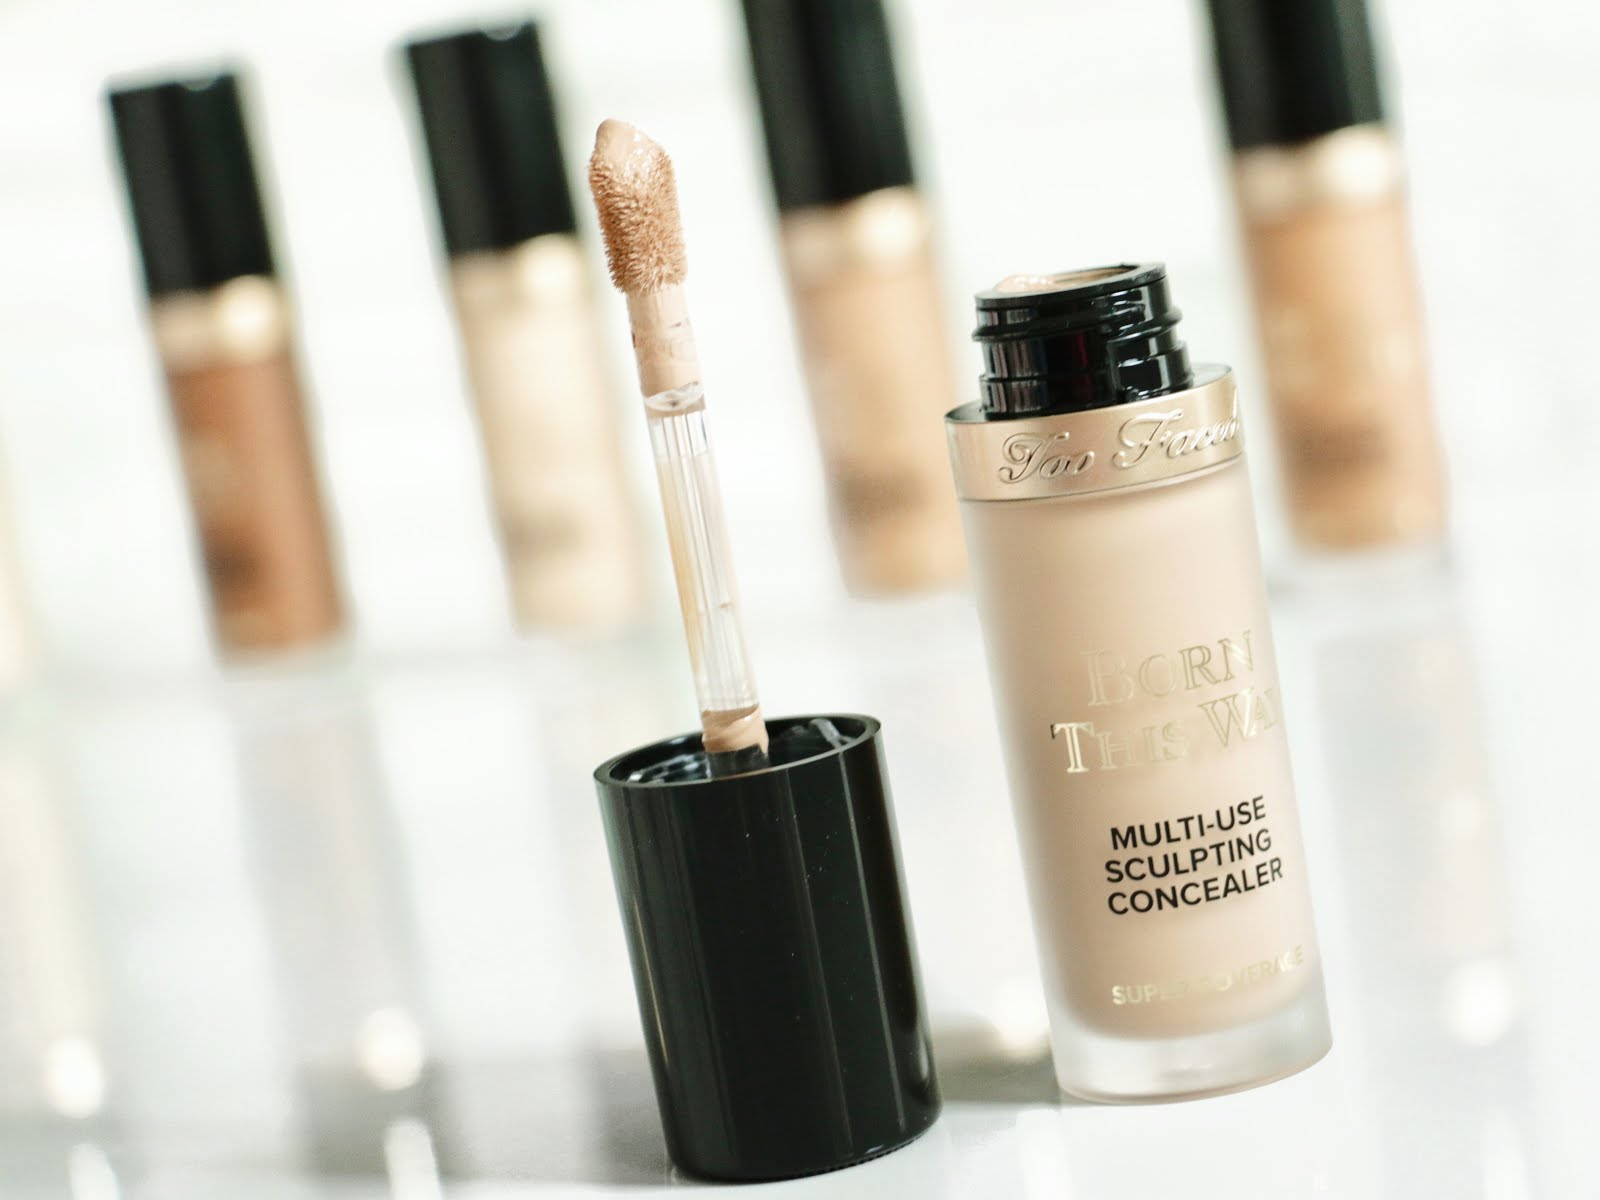 Too-Faced-Born-This-Way-Super-Coverage-Multi-Use-Sculpting-Concealer-Vivi-Brizuela